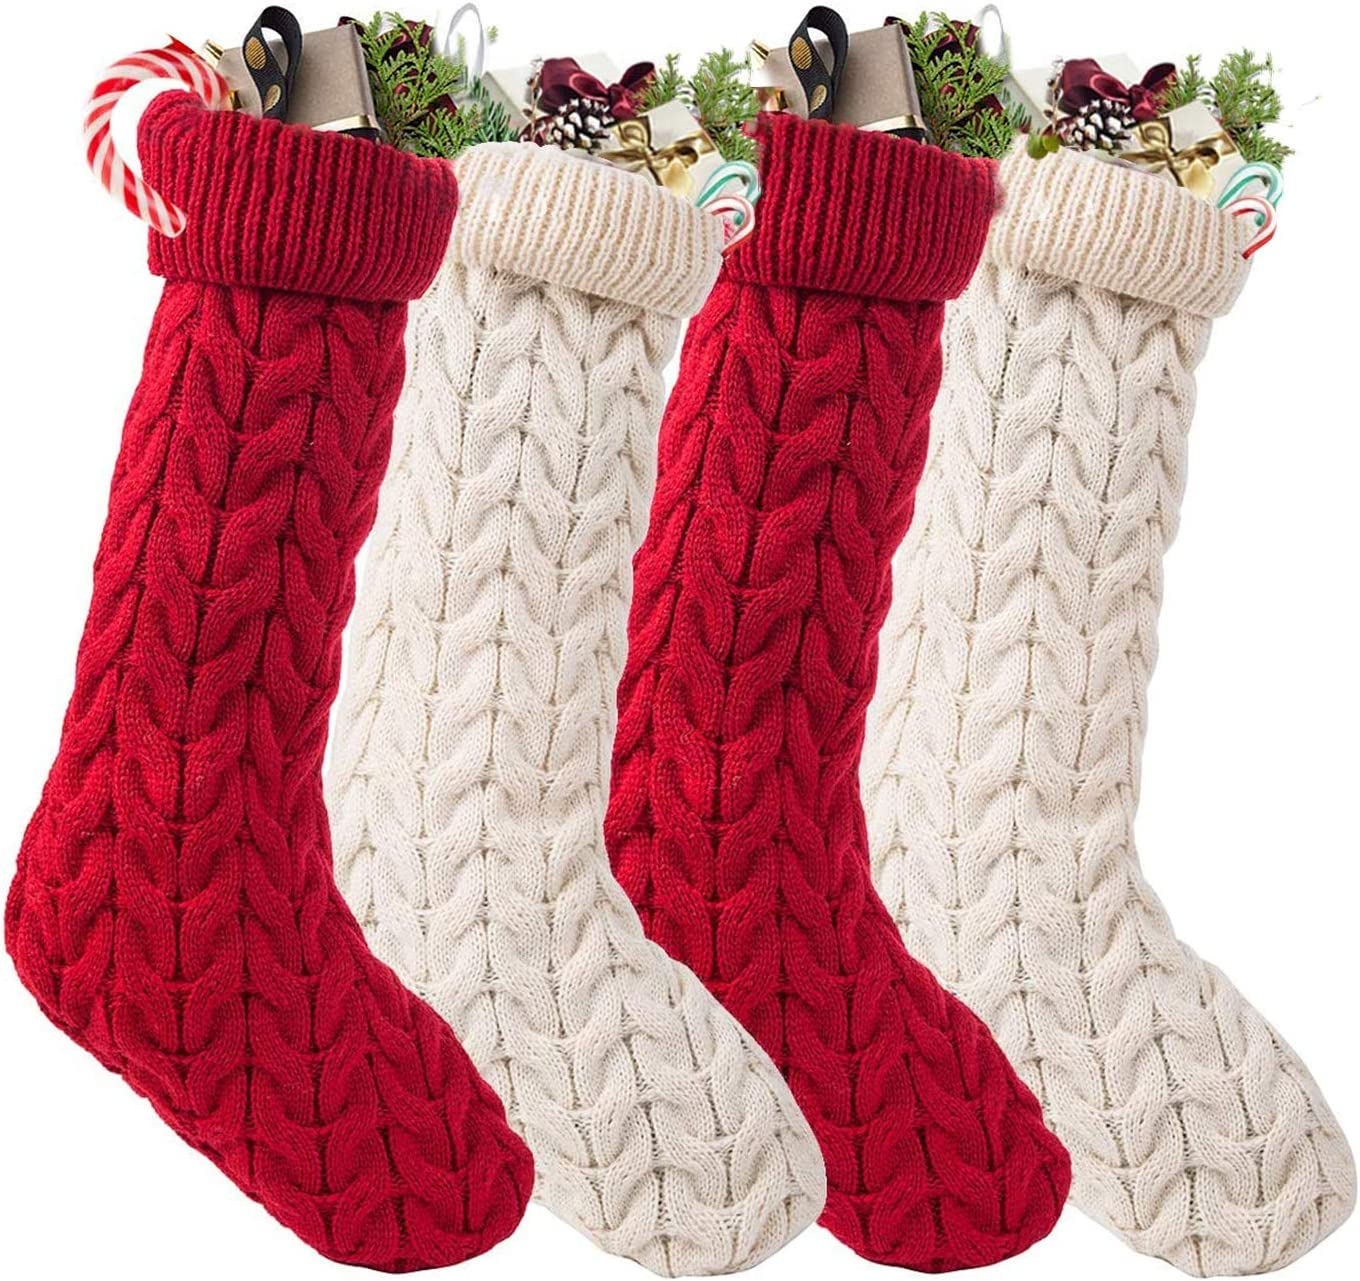 Knitted Christmas Stockings 4 Pack,18 Inches Large Size Cable Knit Personalized Christmas Stocking Decorations, Cream and Burgundy Color for Family Holiday Xmas Party Decor